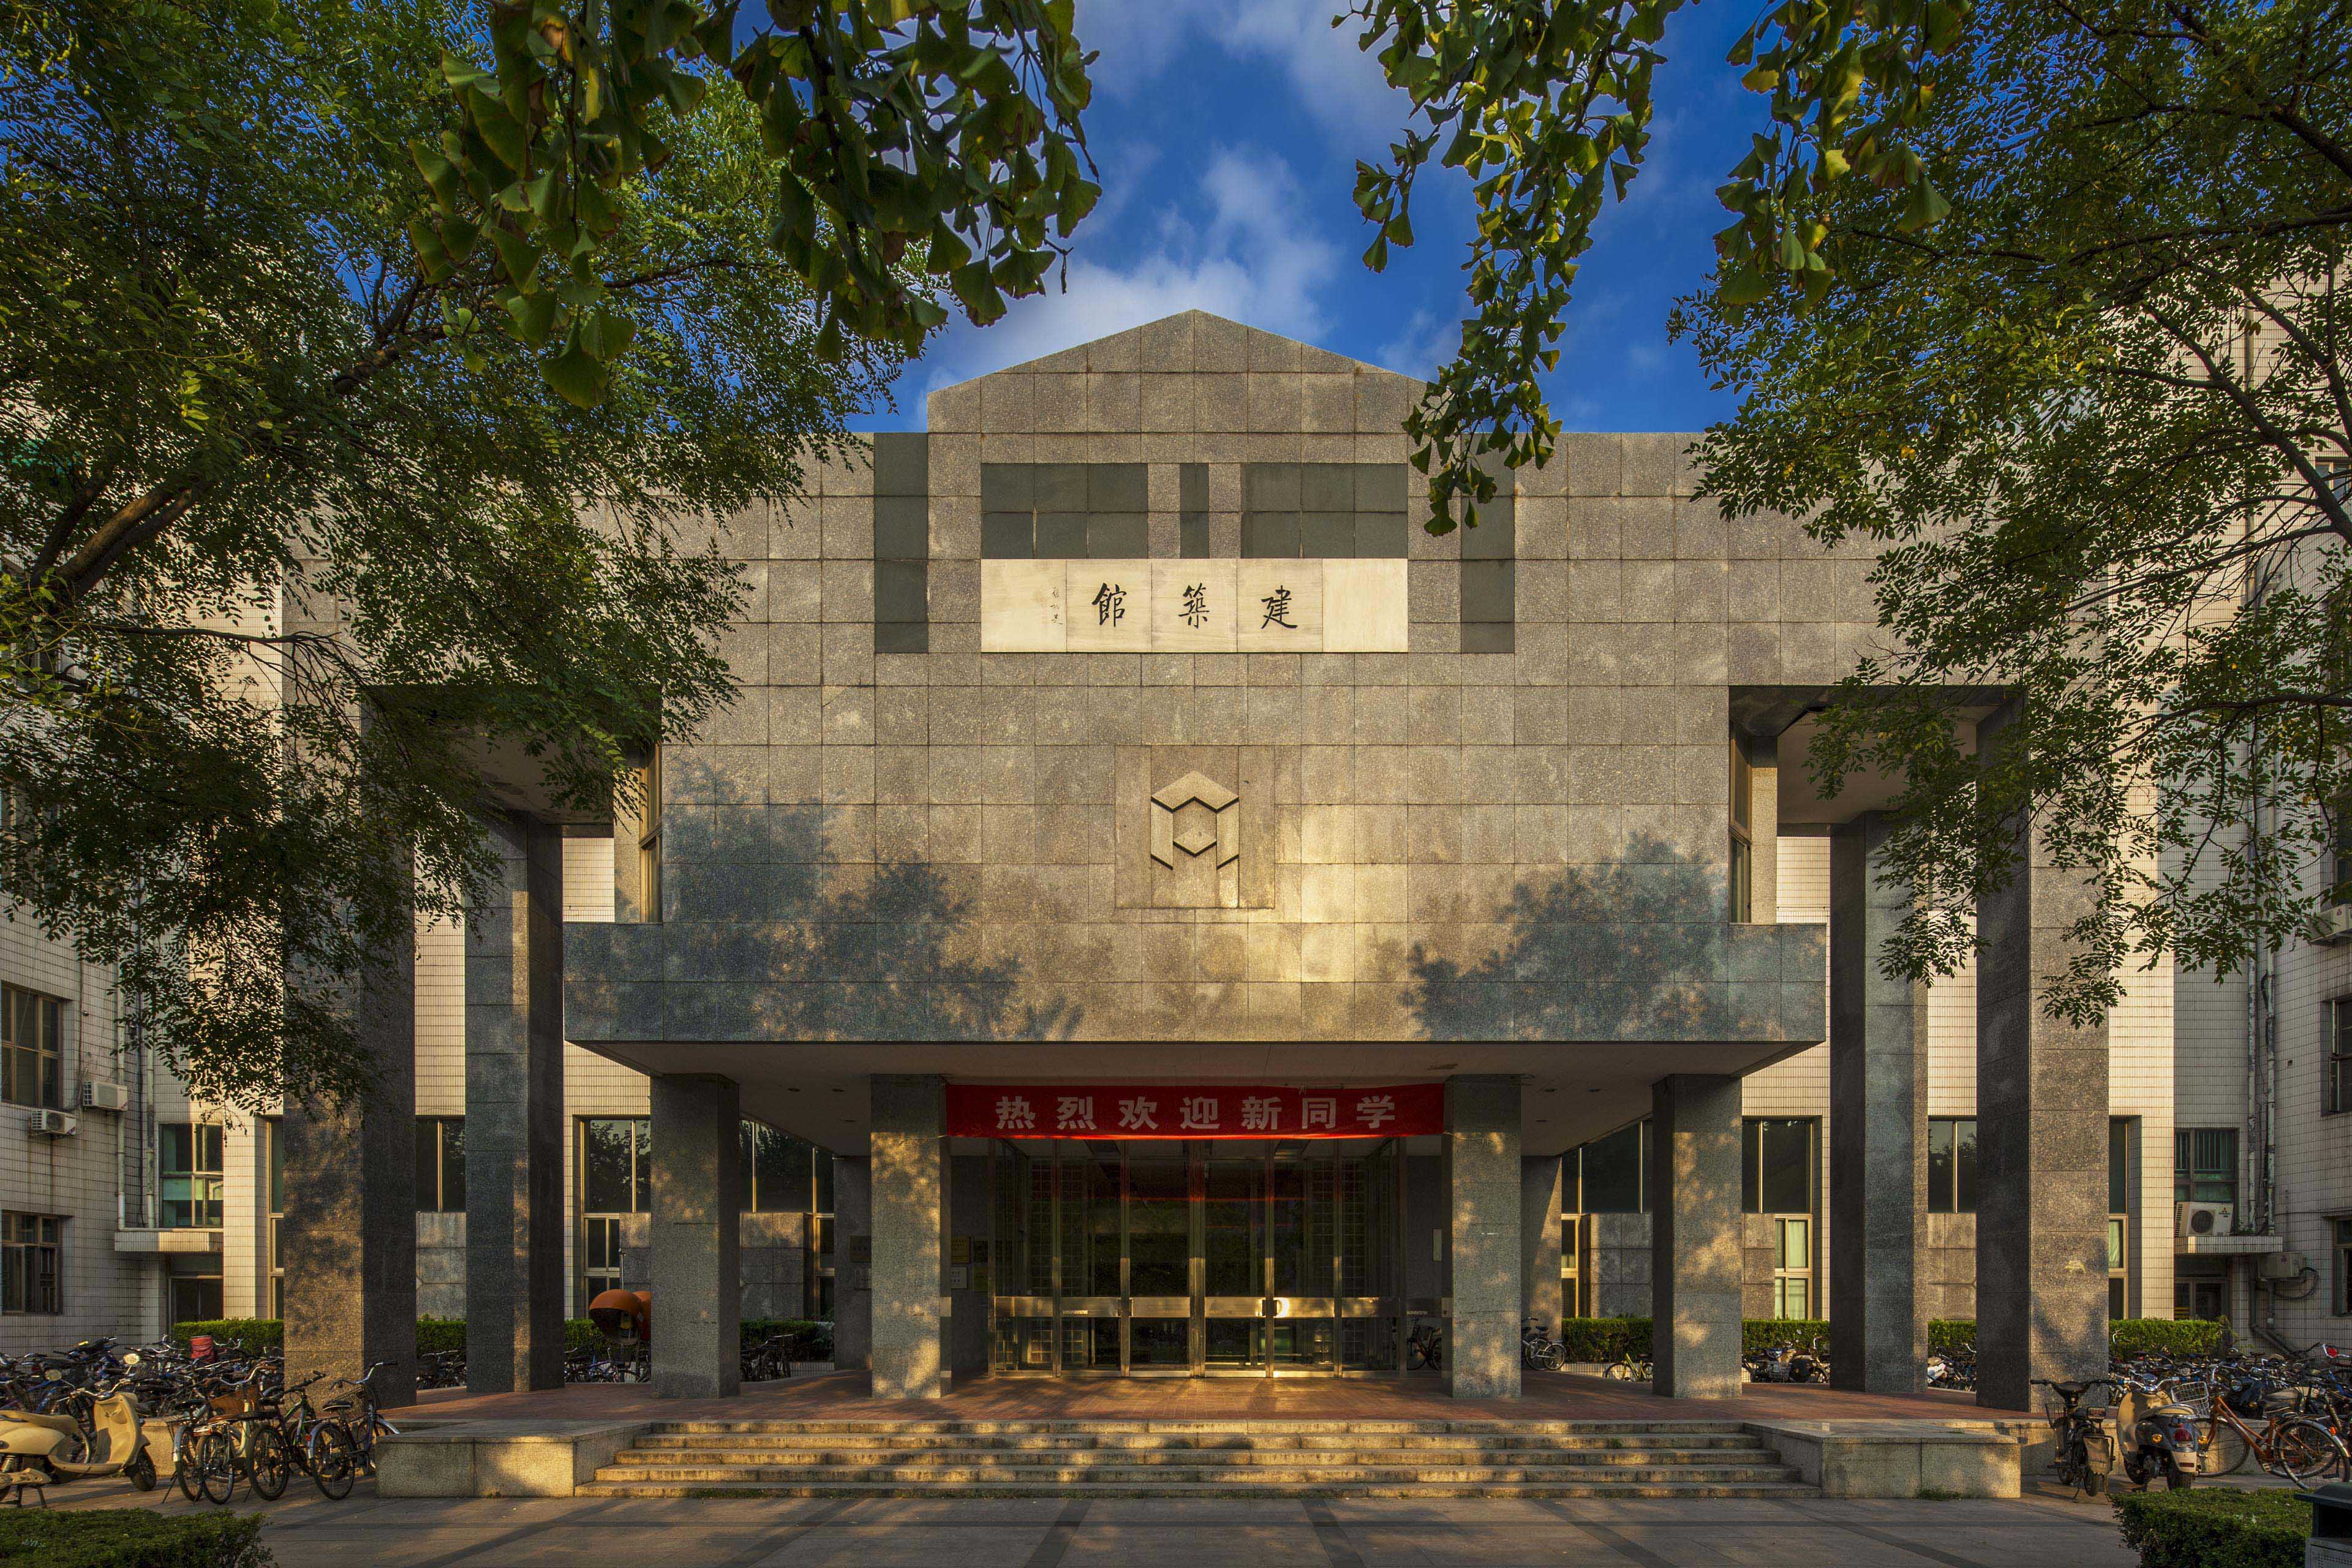 Great Hall of the People Běijīng, School of Architecture, Tsinghua university